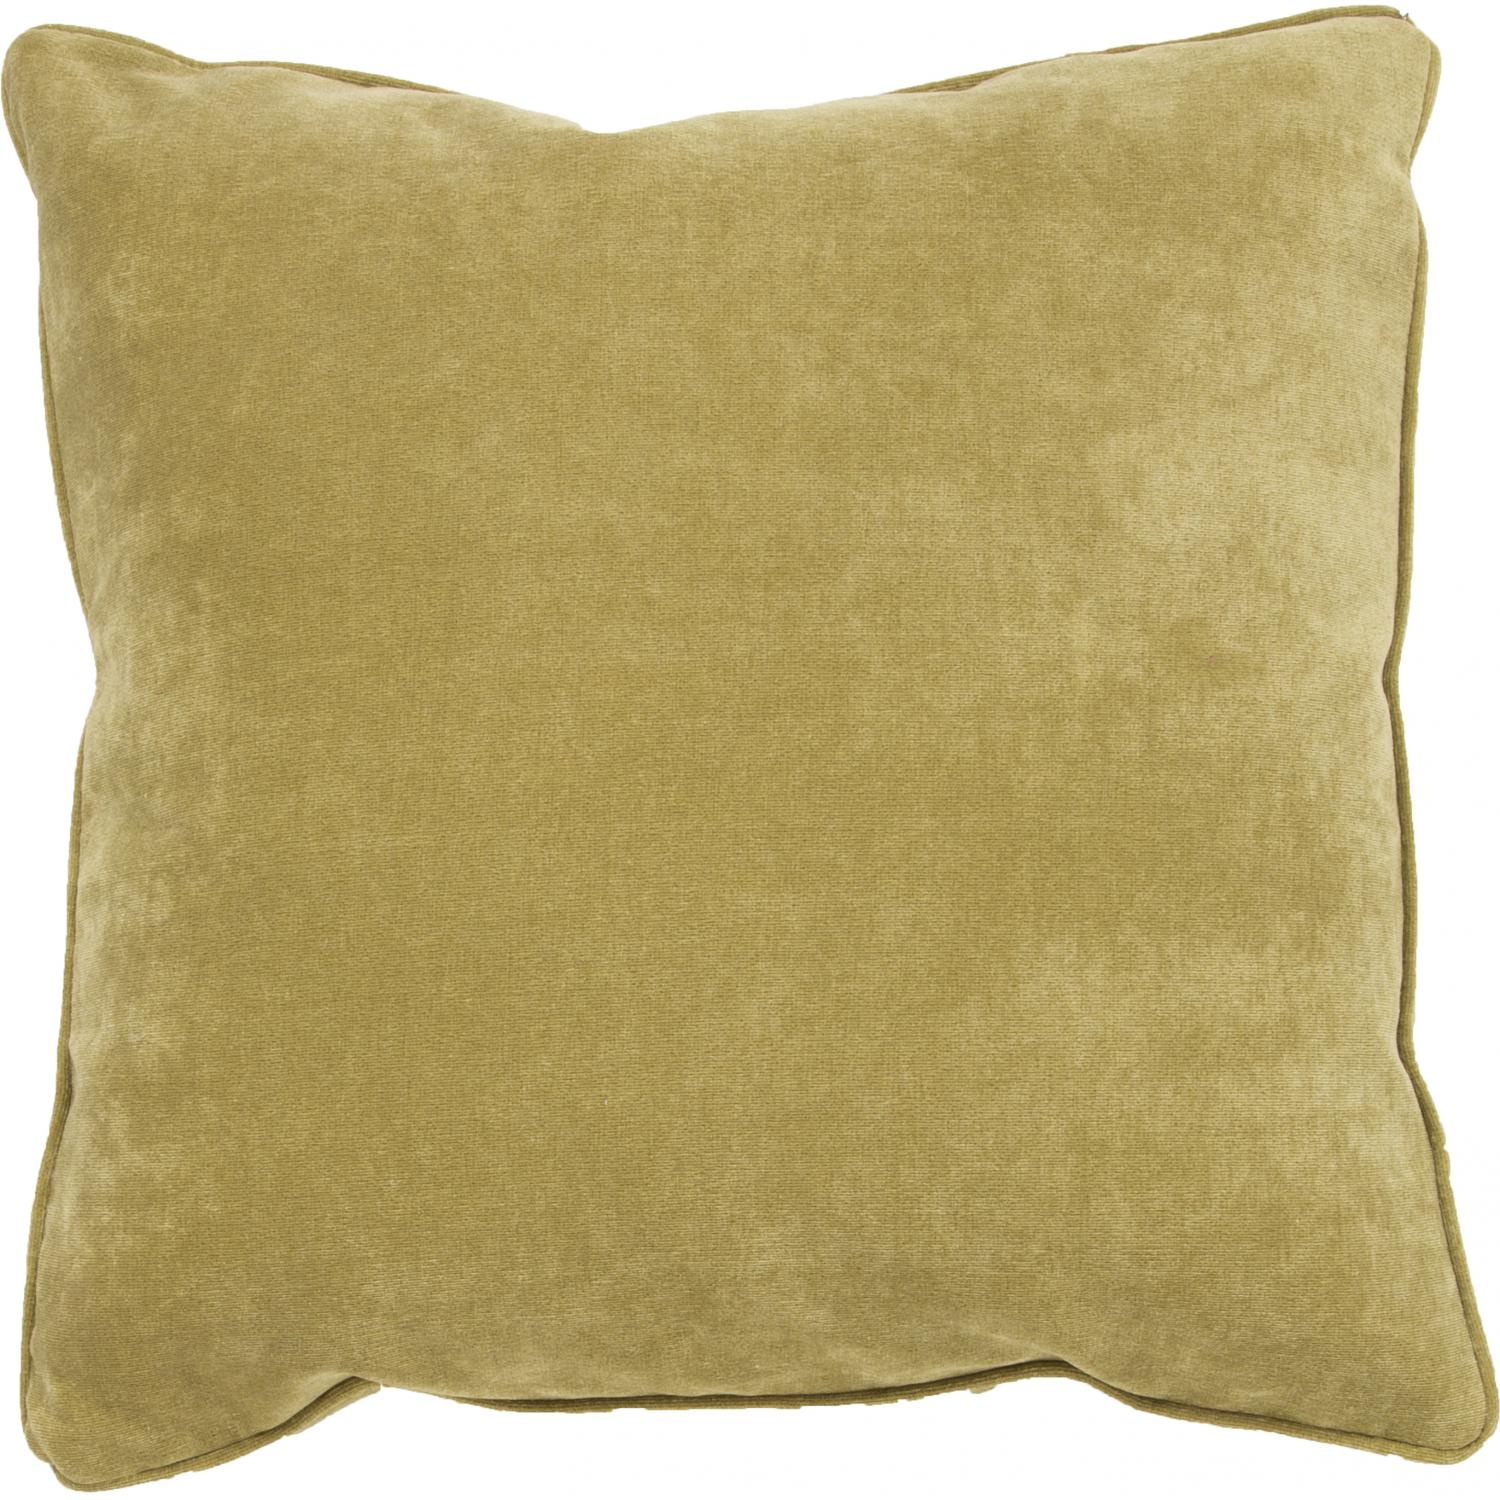 Picture of Jaipur Rugs Allure 20 X 20 Outdoor Pillow - Green